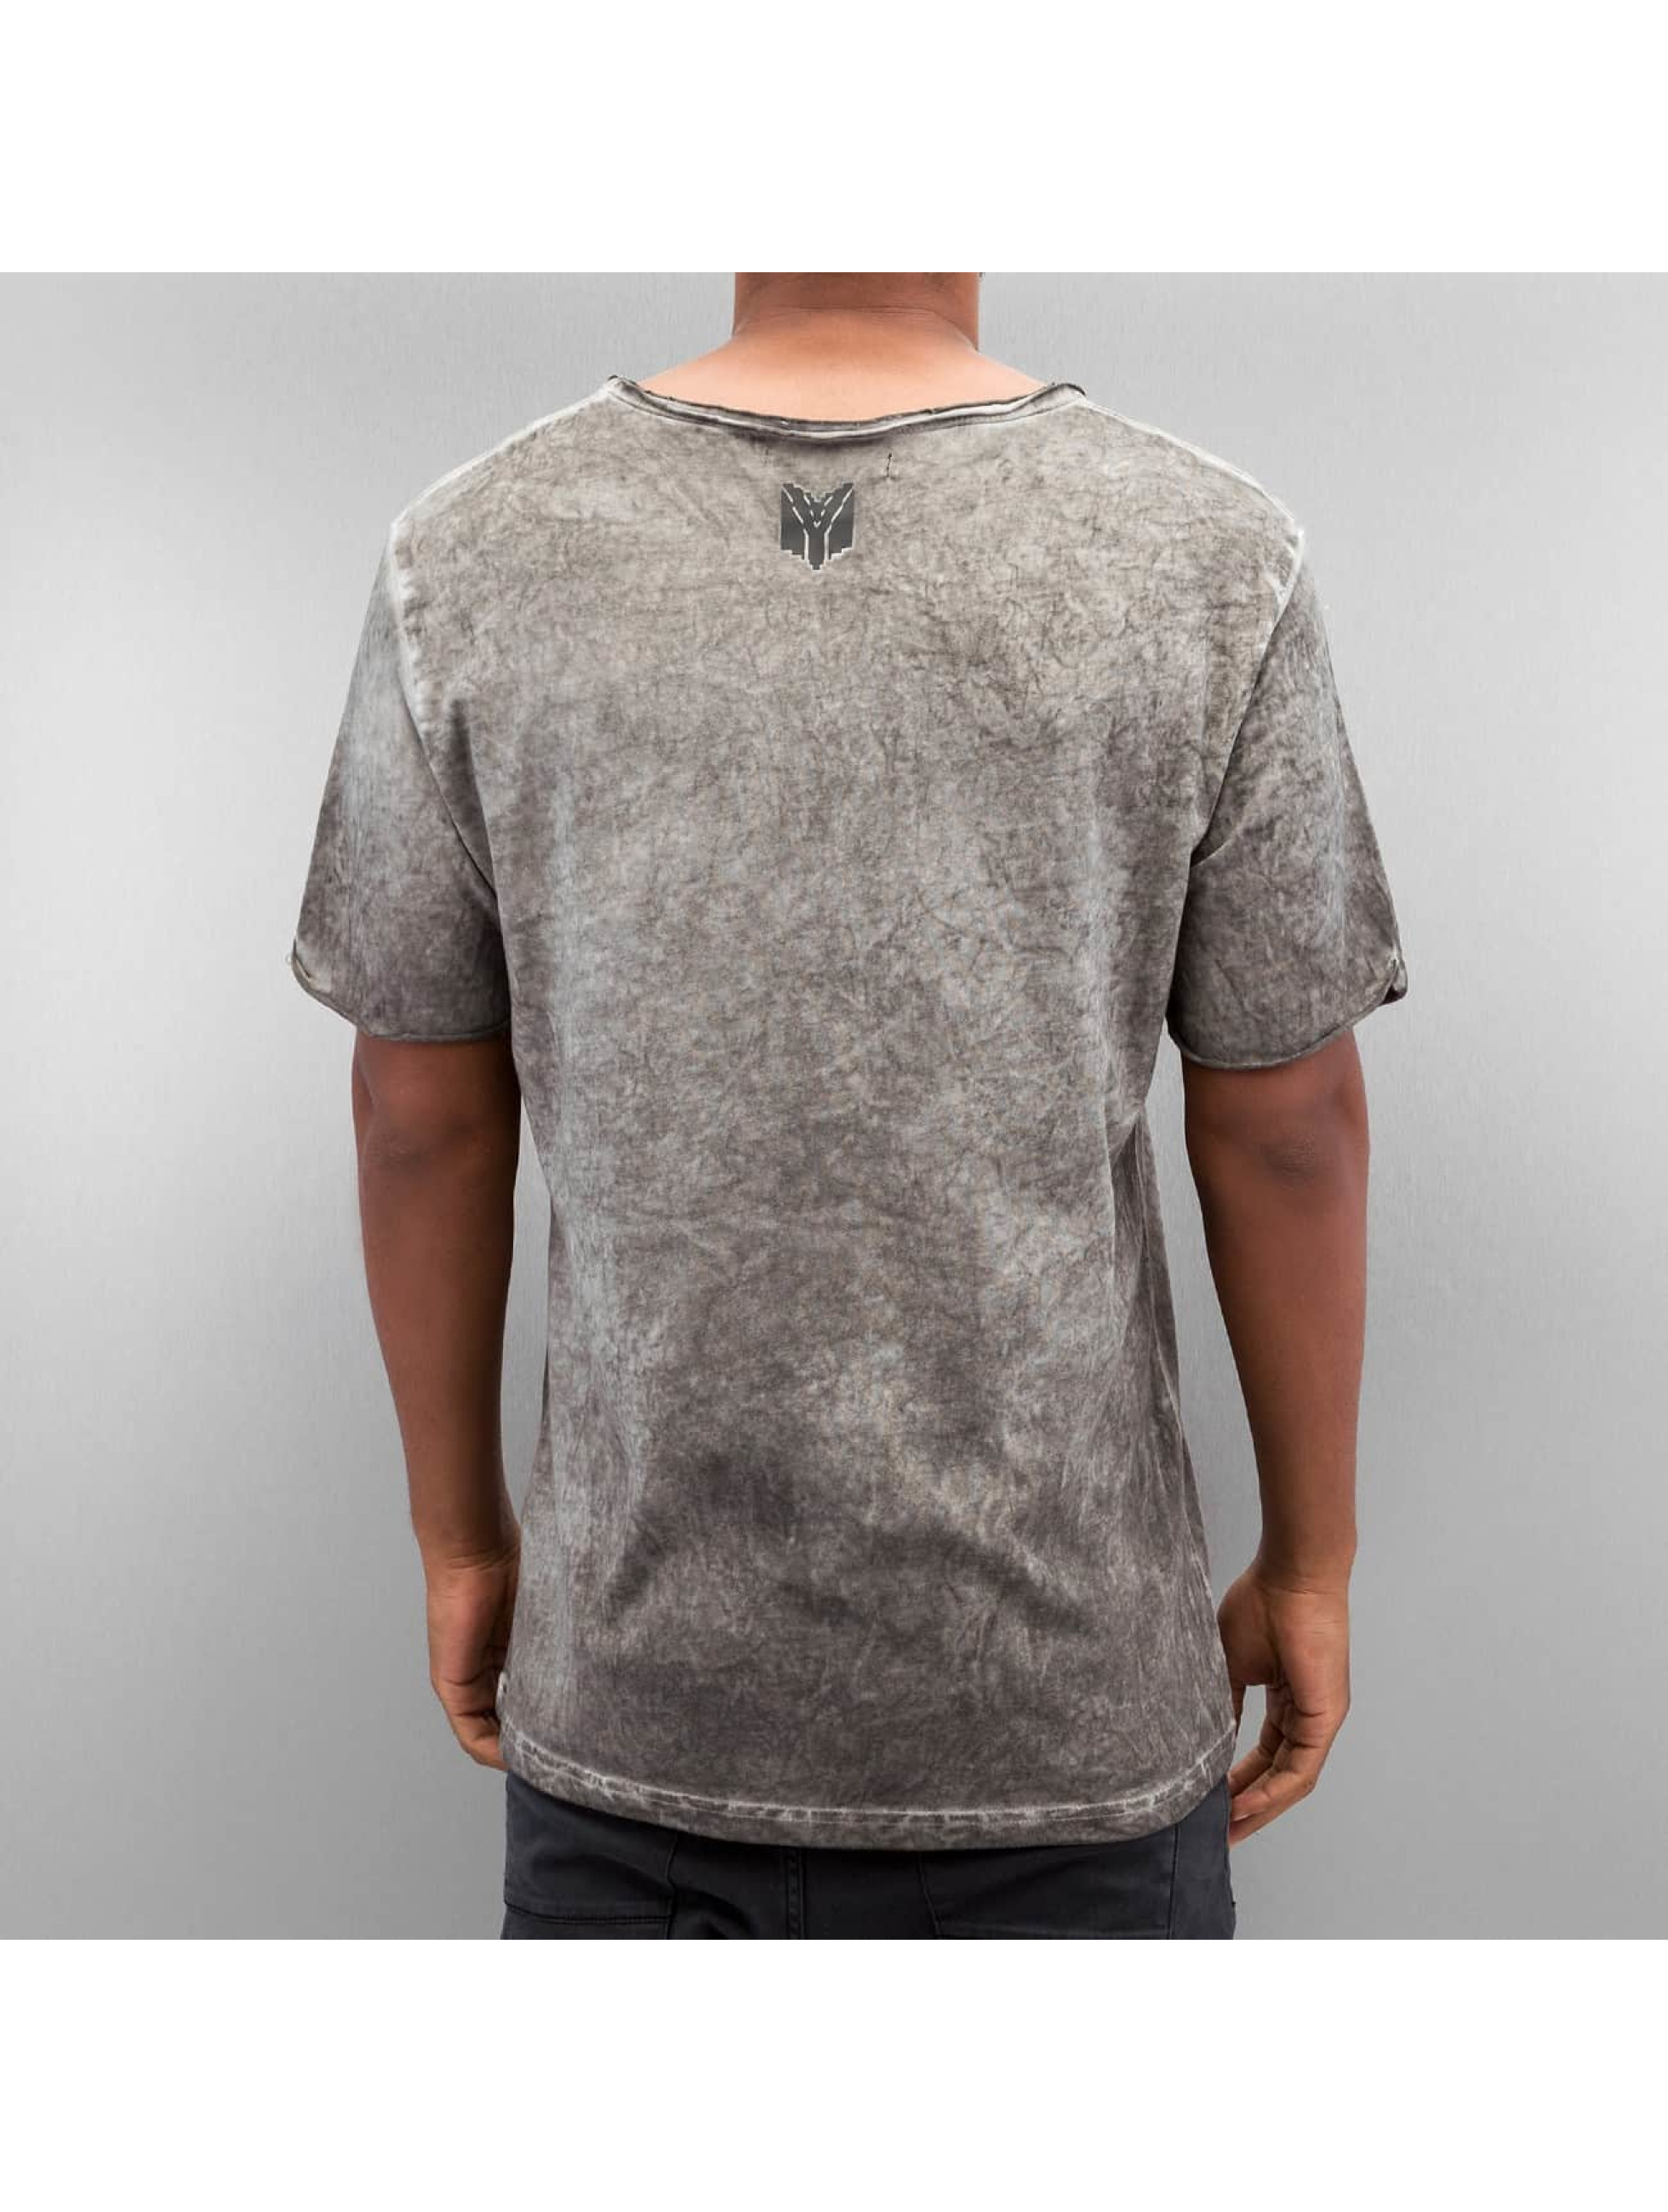 Yezz T-Shirt Washed grau